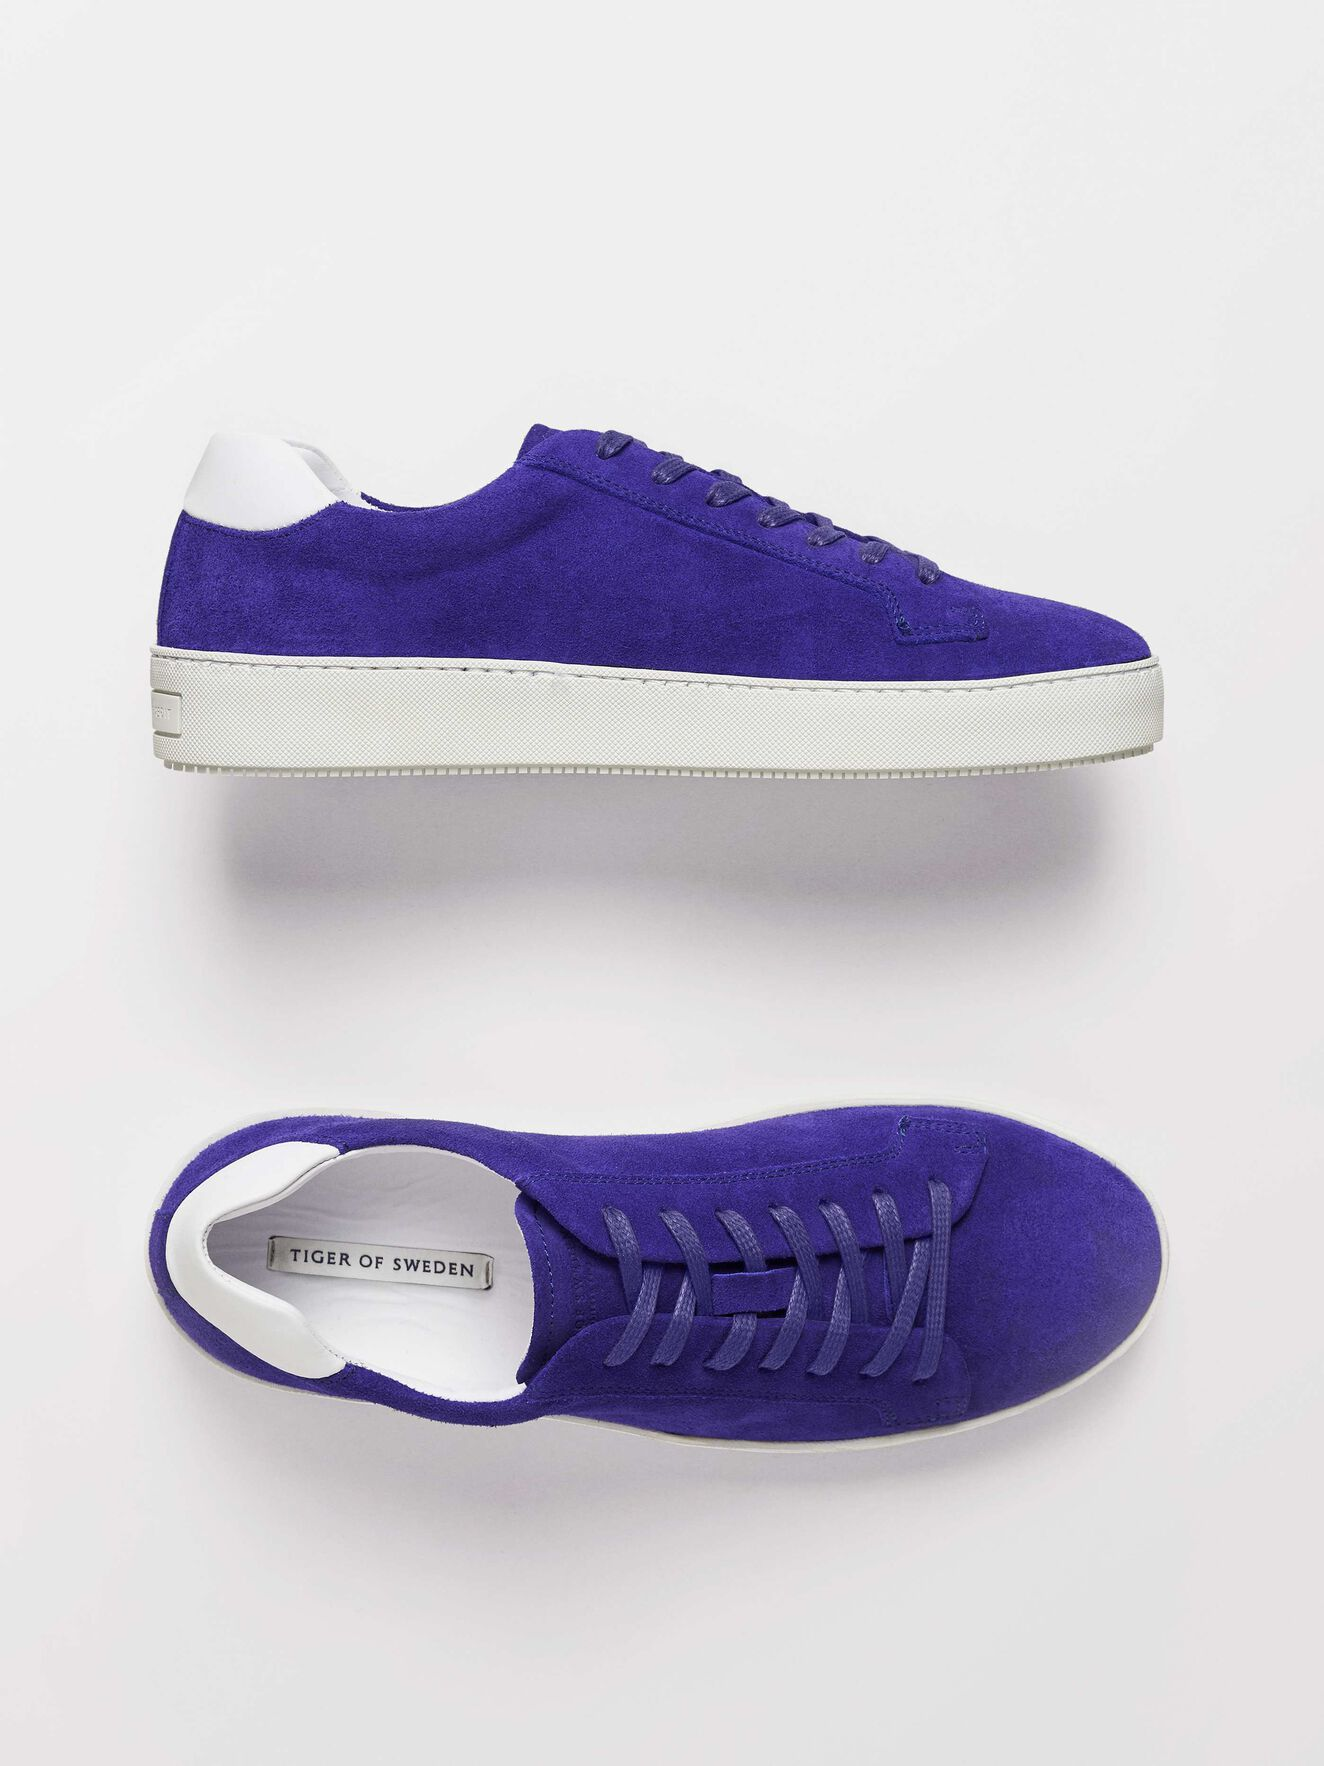 Salasi Sneakers in Hot Purple from Tiger of Sweden